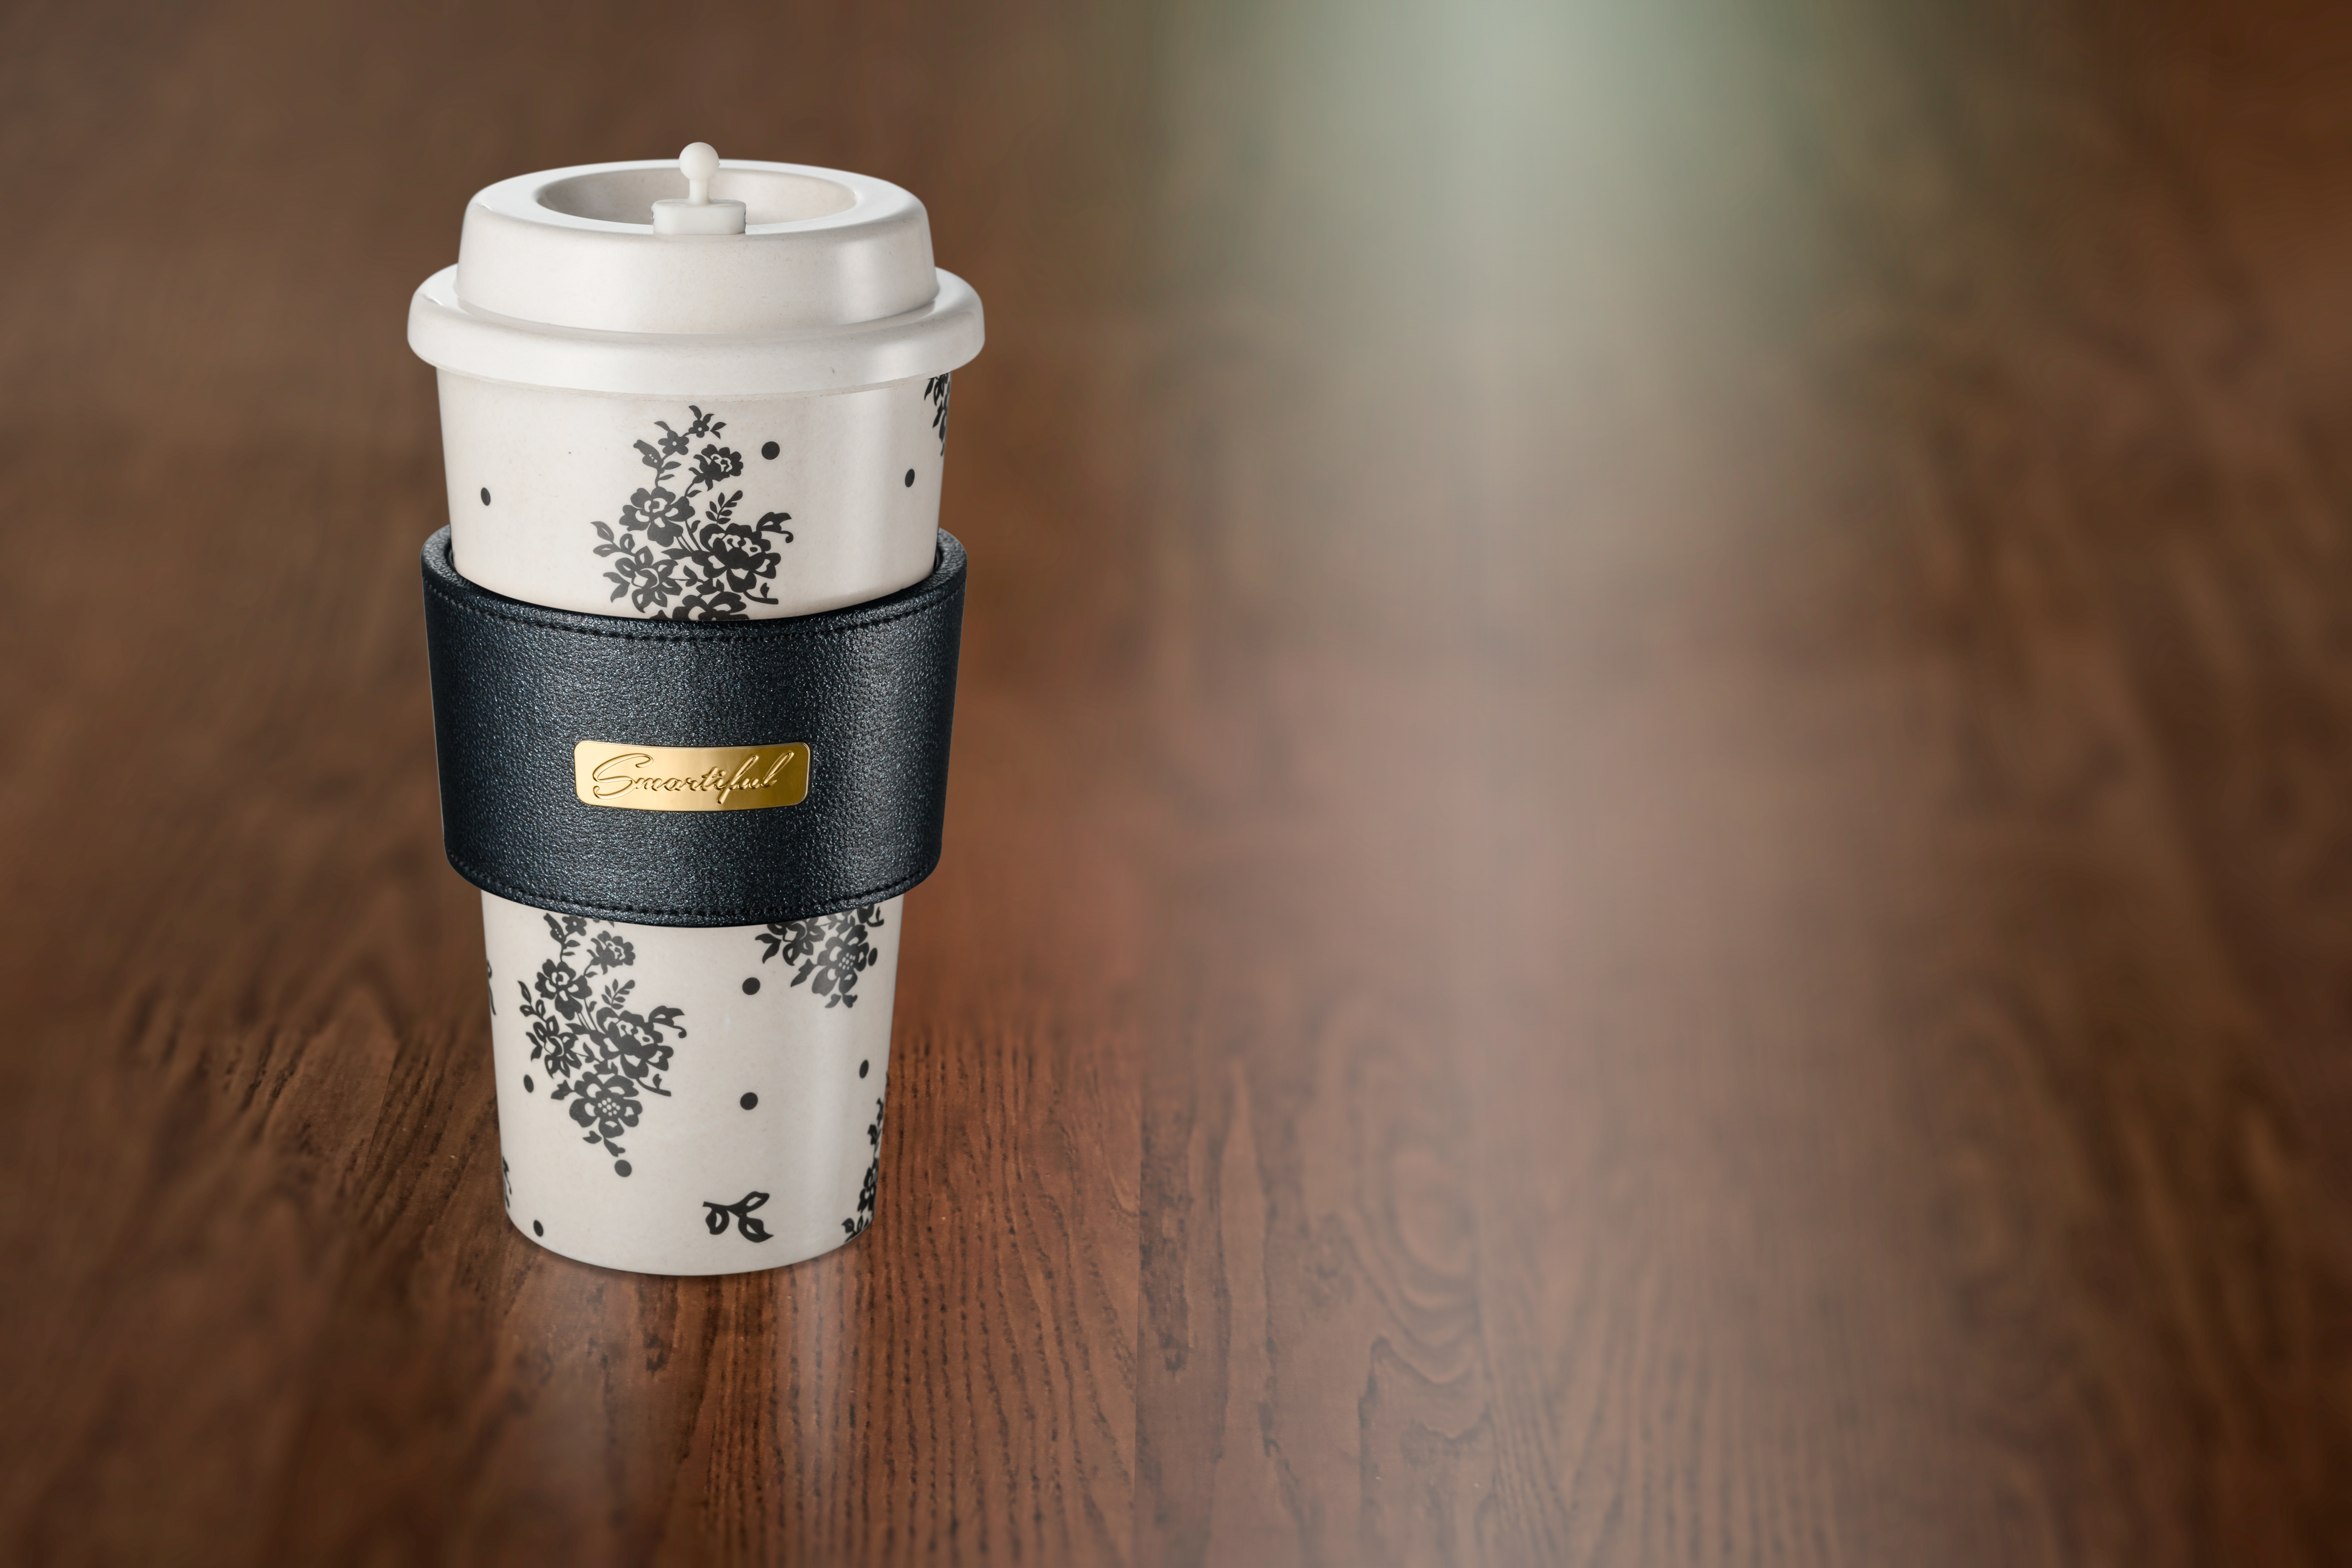 smartiful coffe cup pretty lace black